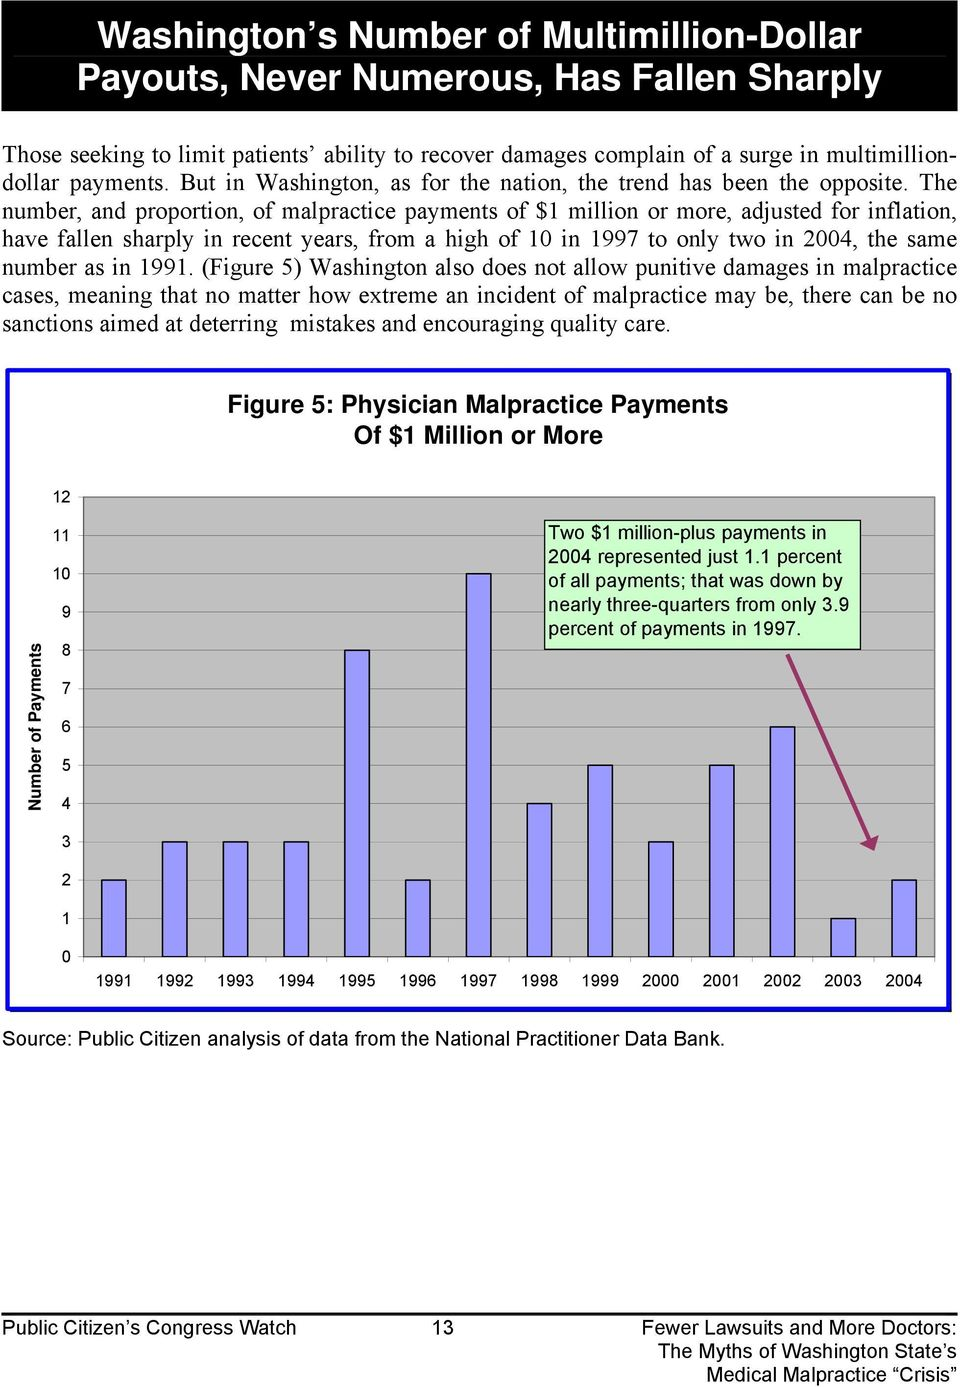 The number, and proportion, of malpractice payments of $1 million or more, adjusted for inflation, have fallen sharply in recent years, from a high of 10 in 1997 to only two in 2004, the same number